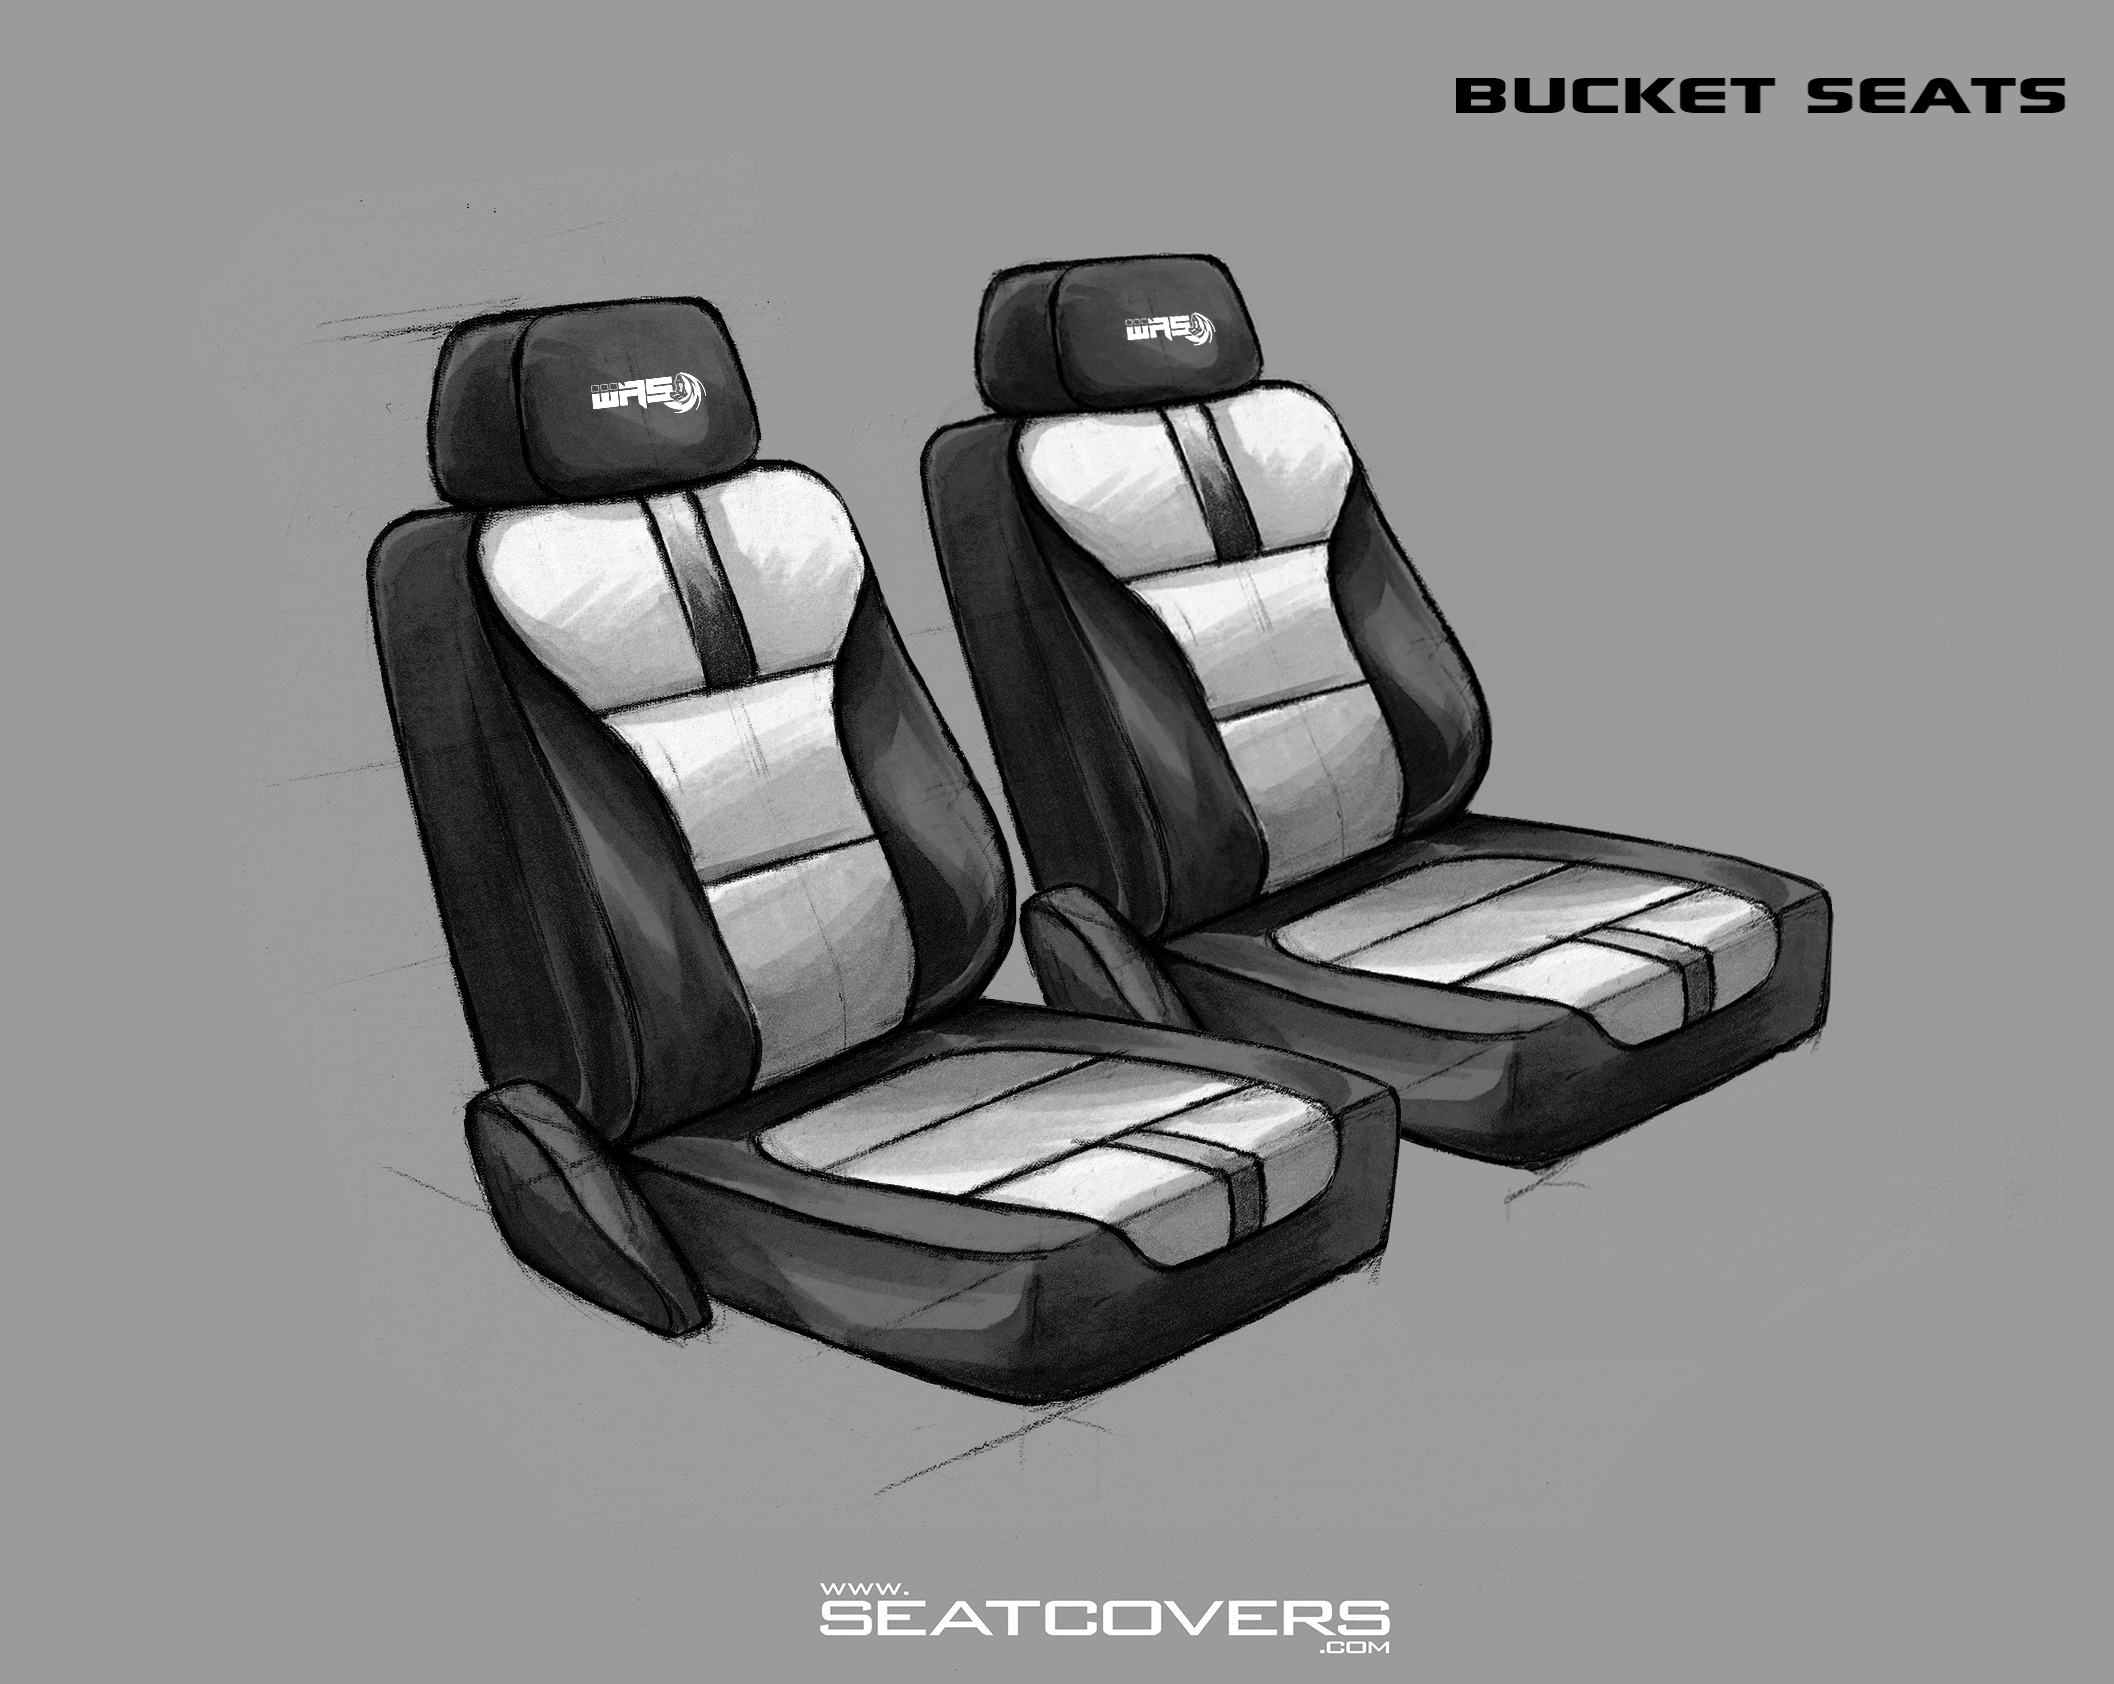 2 Bucket Seats (colored) (correction with spaced center)